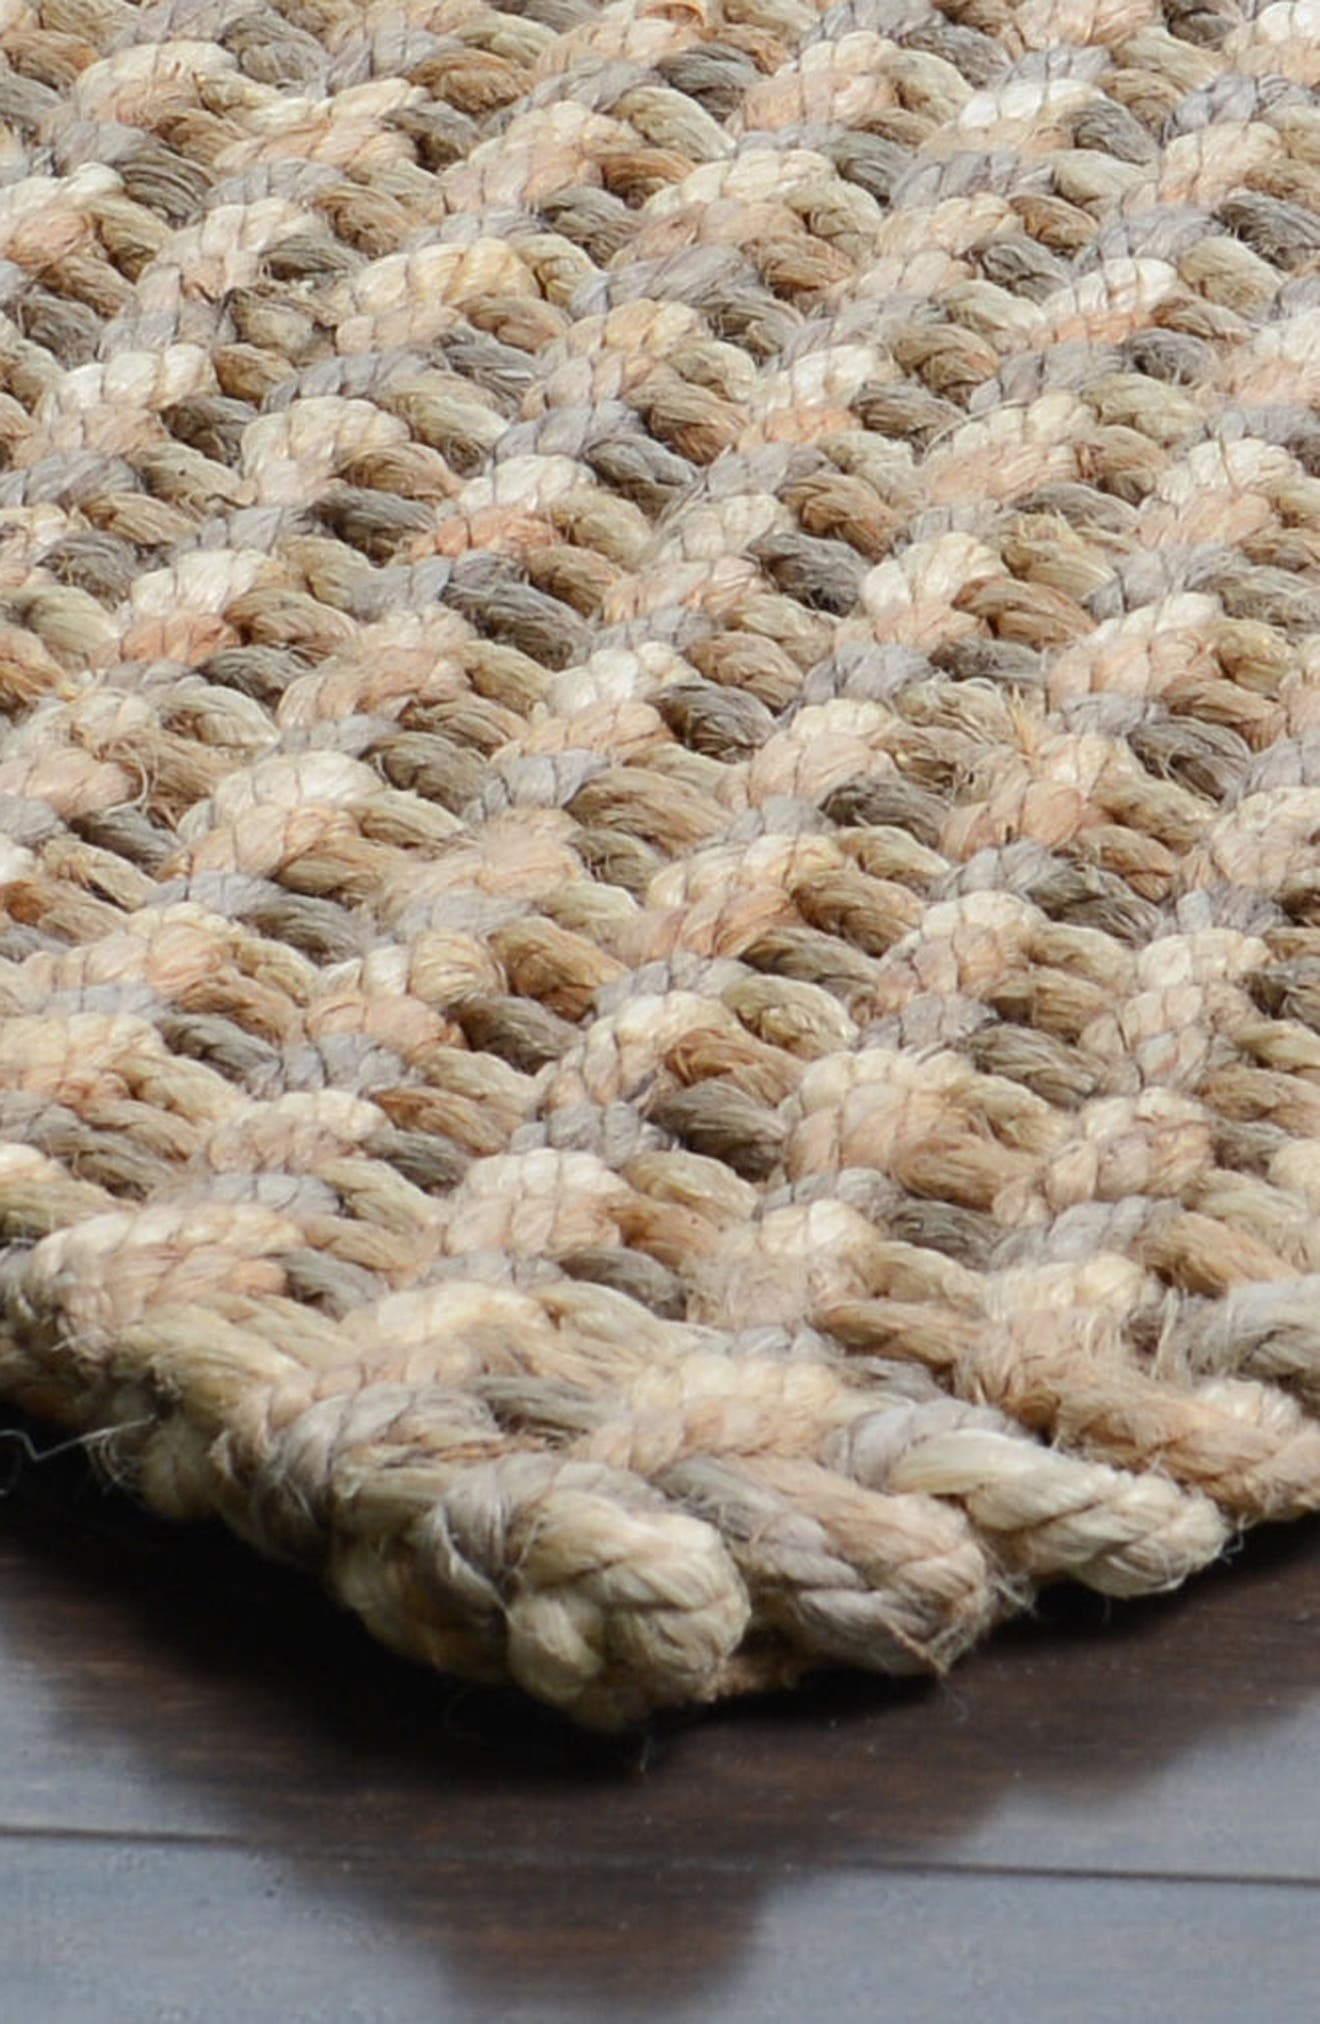 Ladera Handwoven Rug,                             Alternate thumbnail 2, color,                             Natural/ Bleach